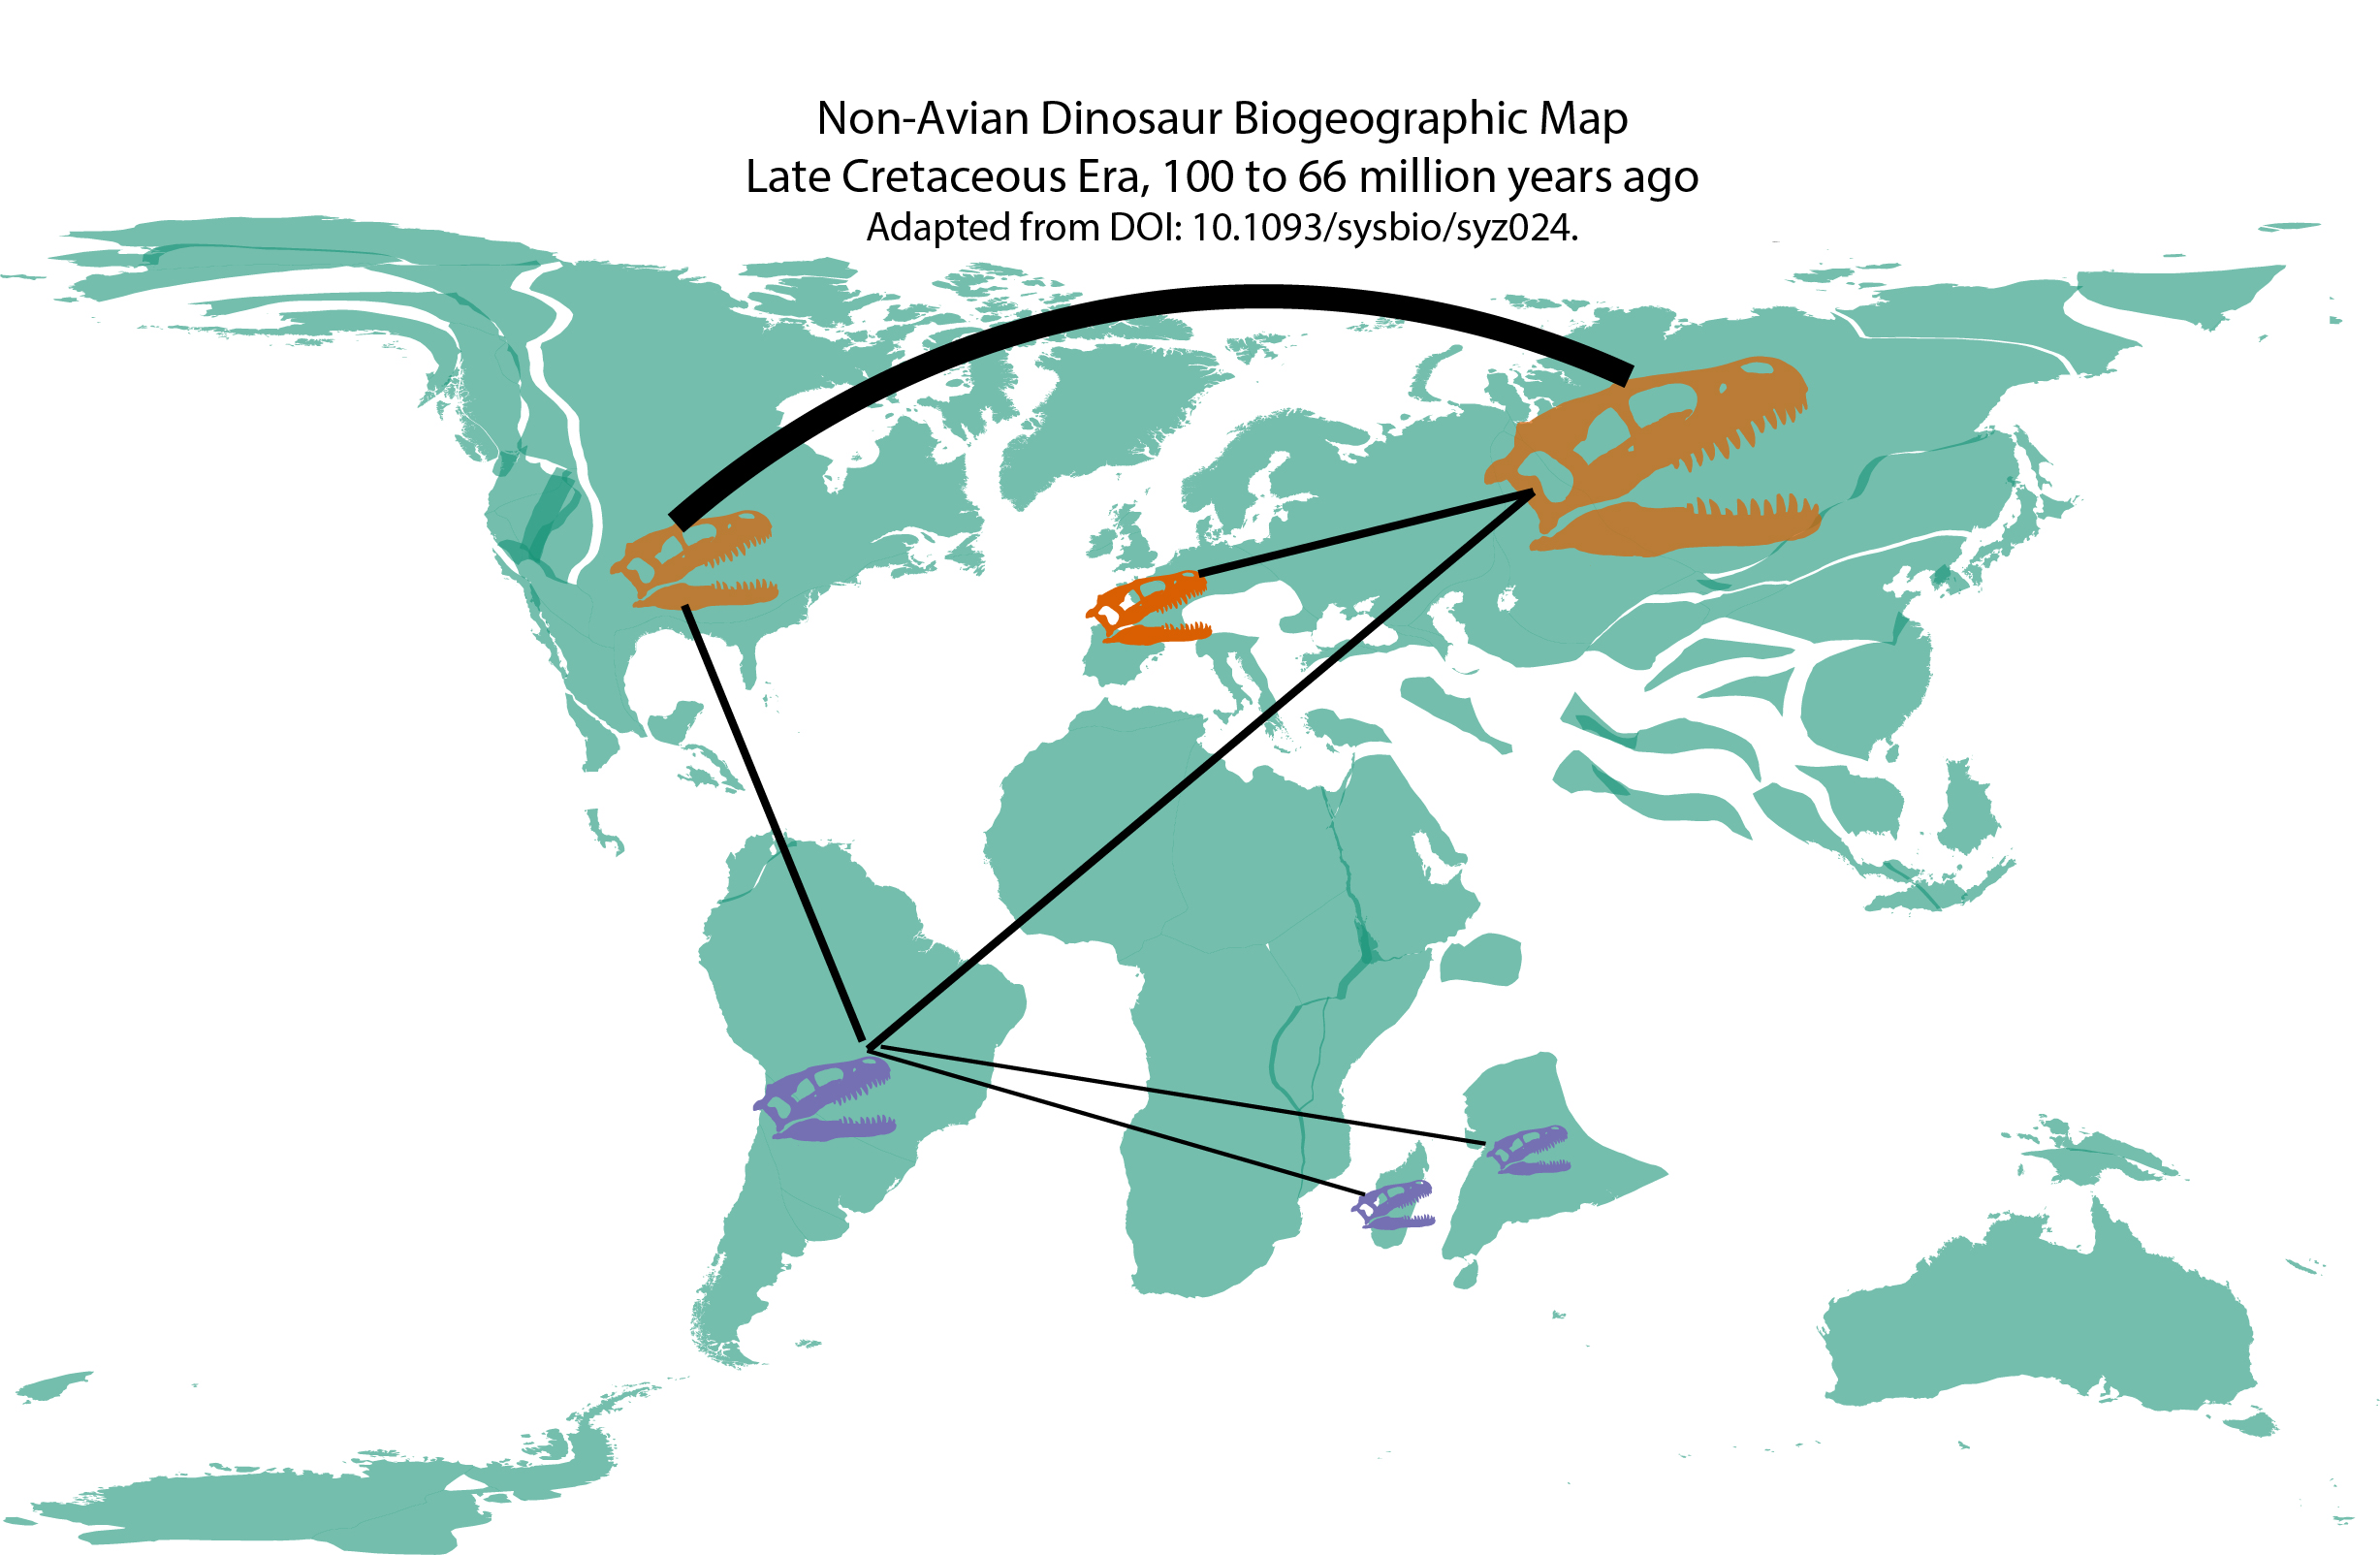 Late cretaceous biogeographical map of nonavian dinosaurs.